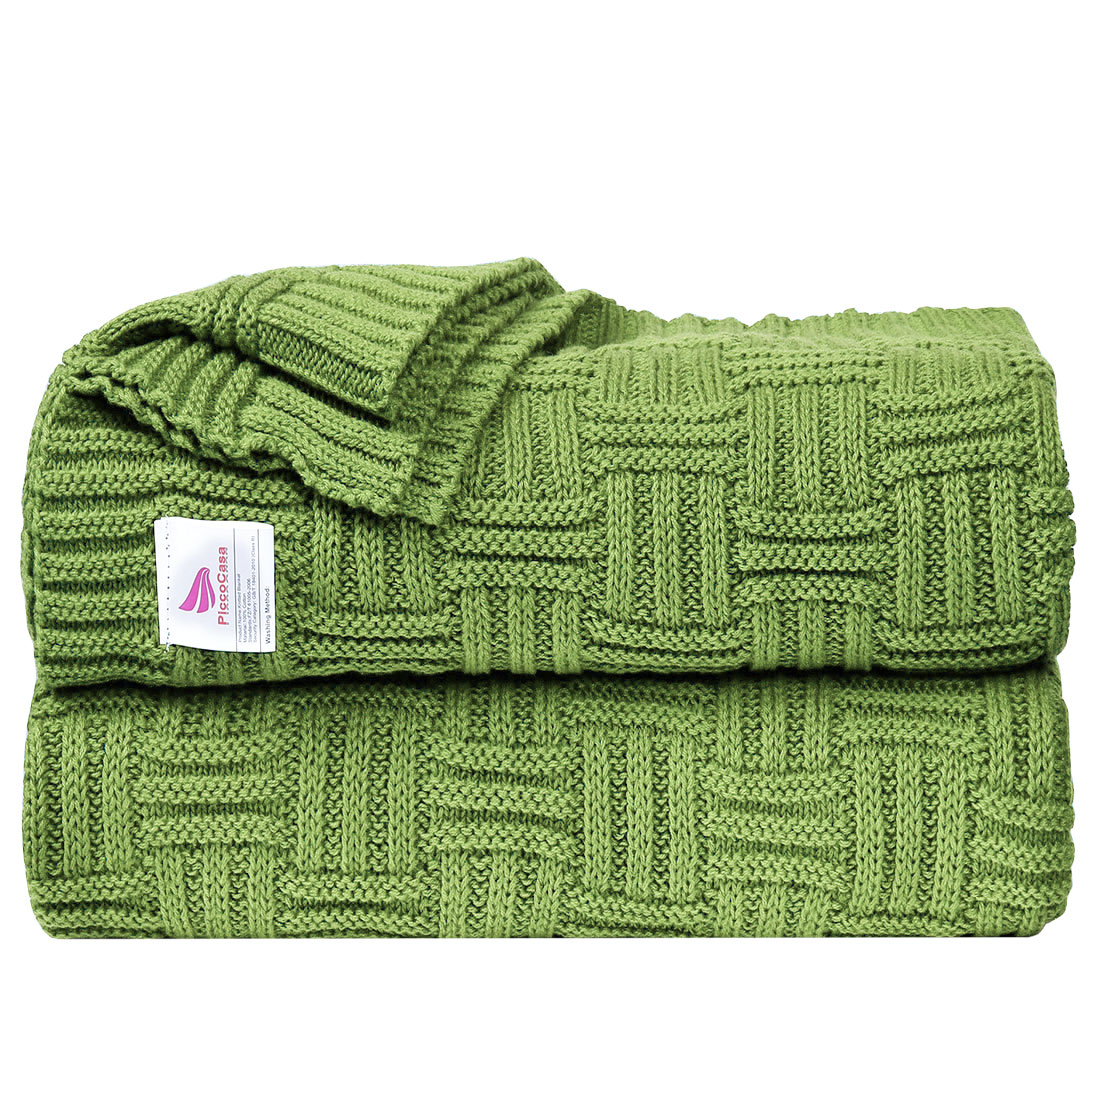 100% Cotton Warm Cable Knit Throw Blanket for Sofa Couch Decor Green